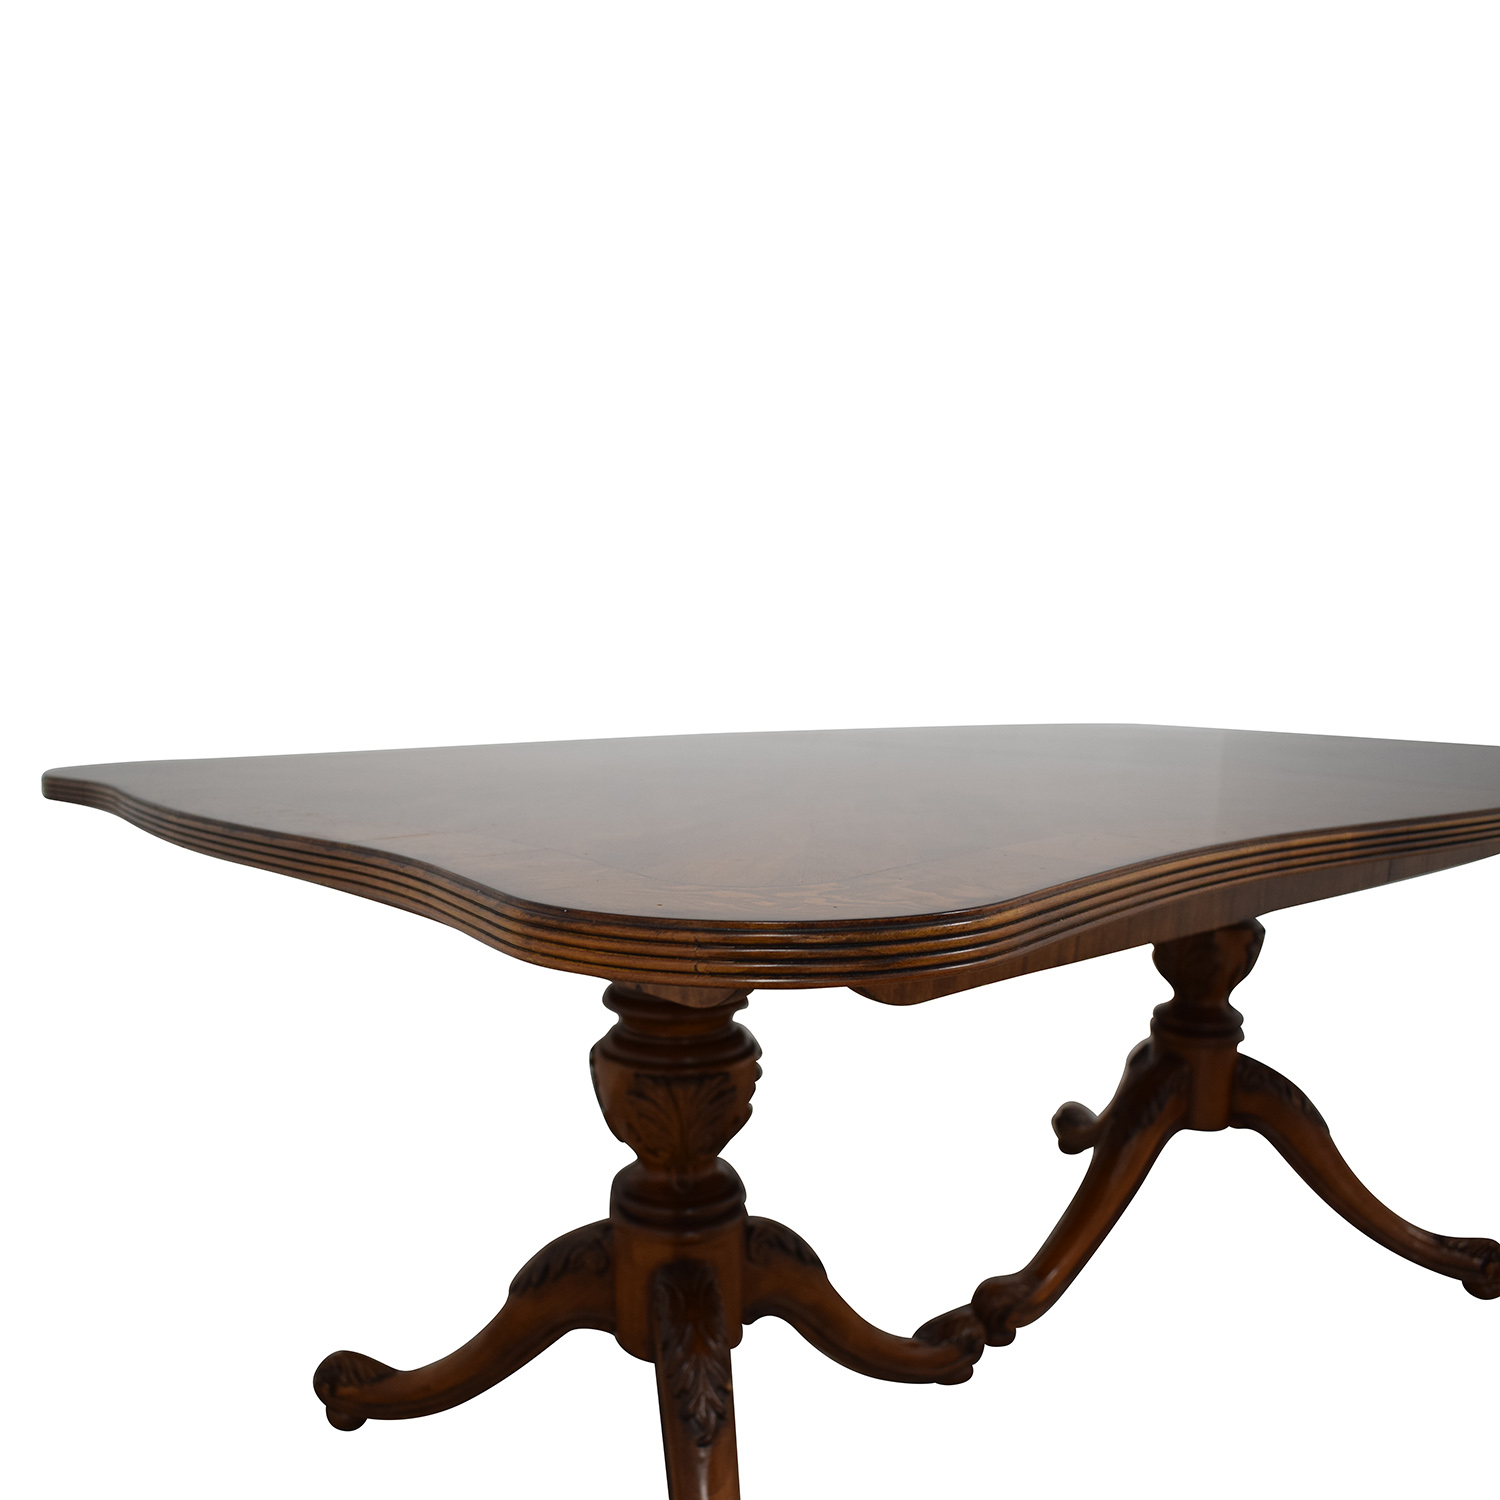 Drexel Heritage Drexel Heritage Dining Table brown